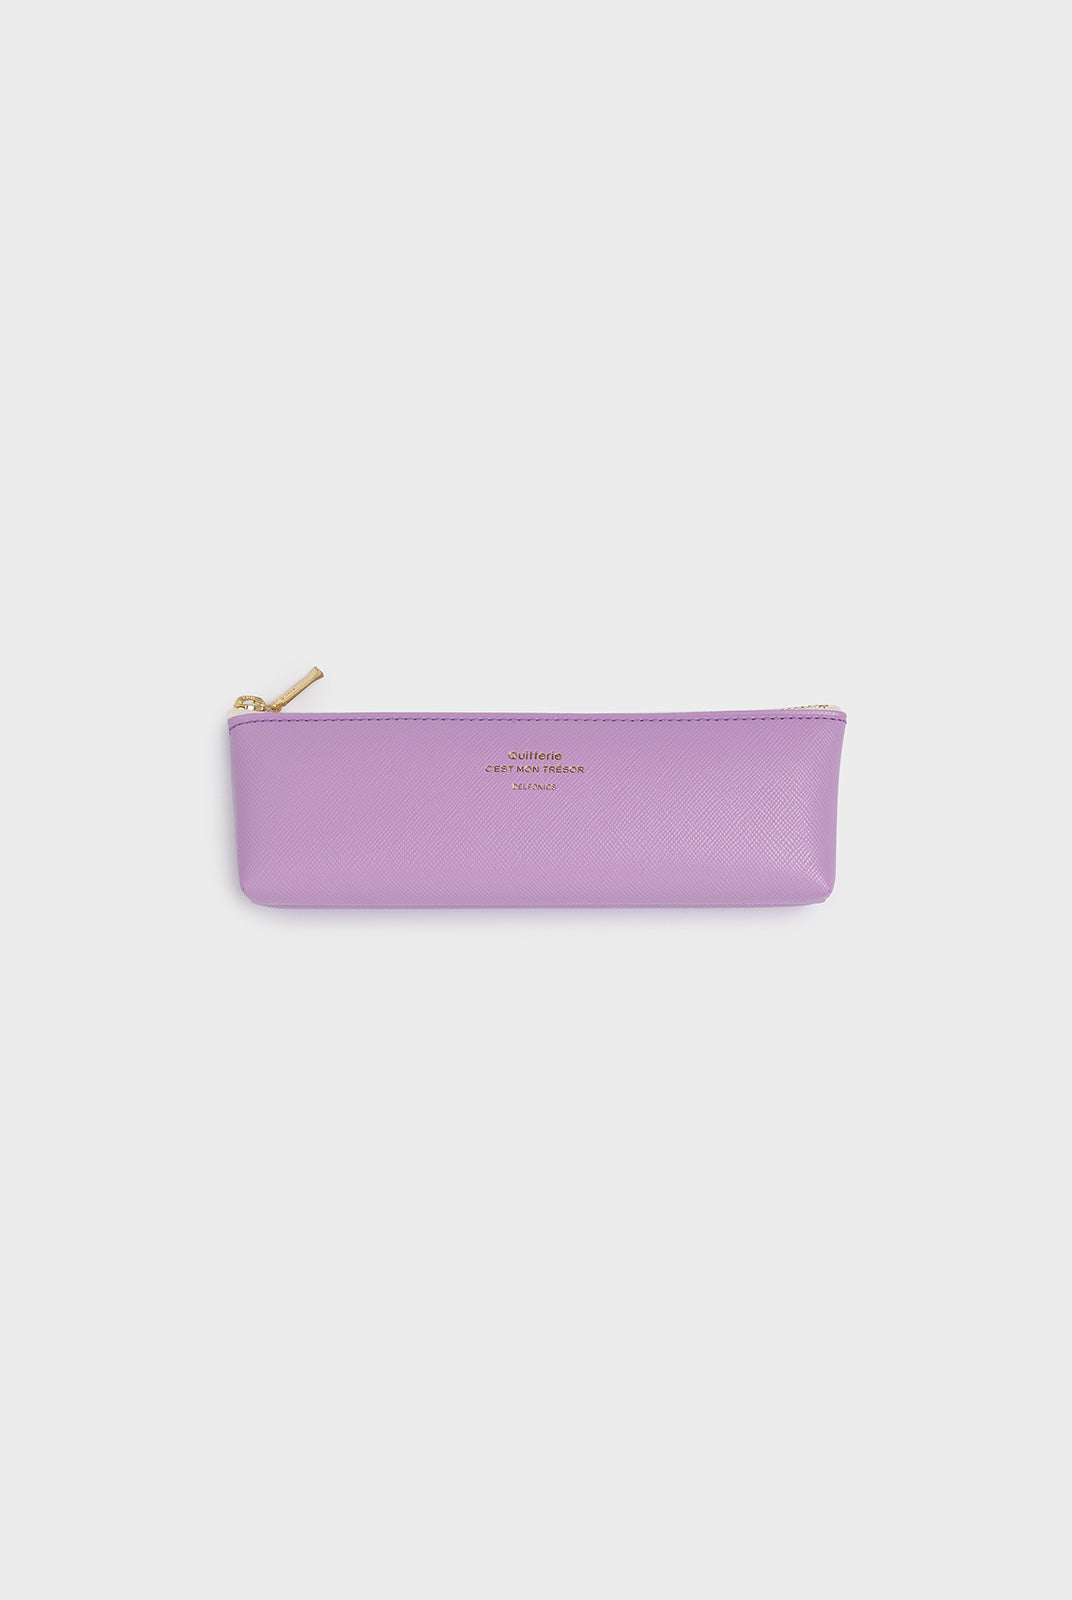 Delfonics - Quitterie Pencil Case - Light Purple